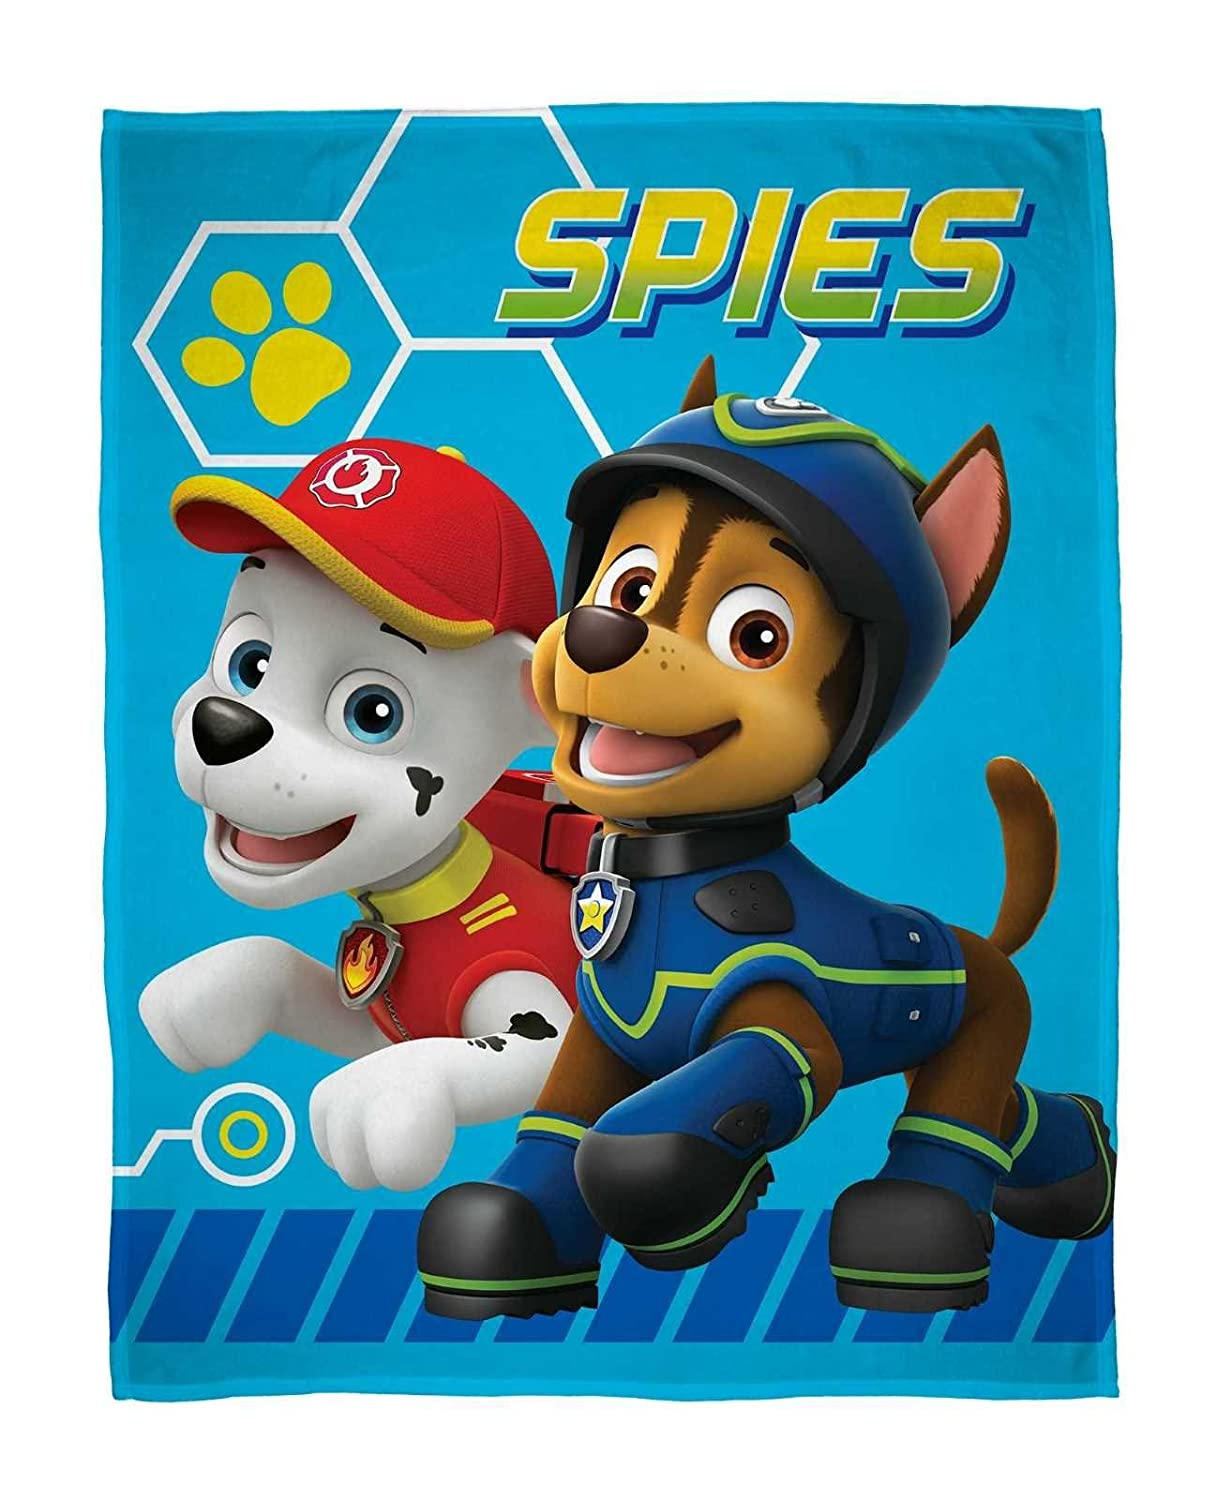 PAW Patrol 'Spy' Fleece Blanket - Large Print Design CW PAWSPYFL002UK